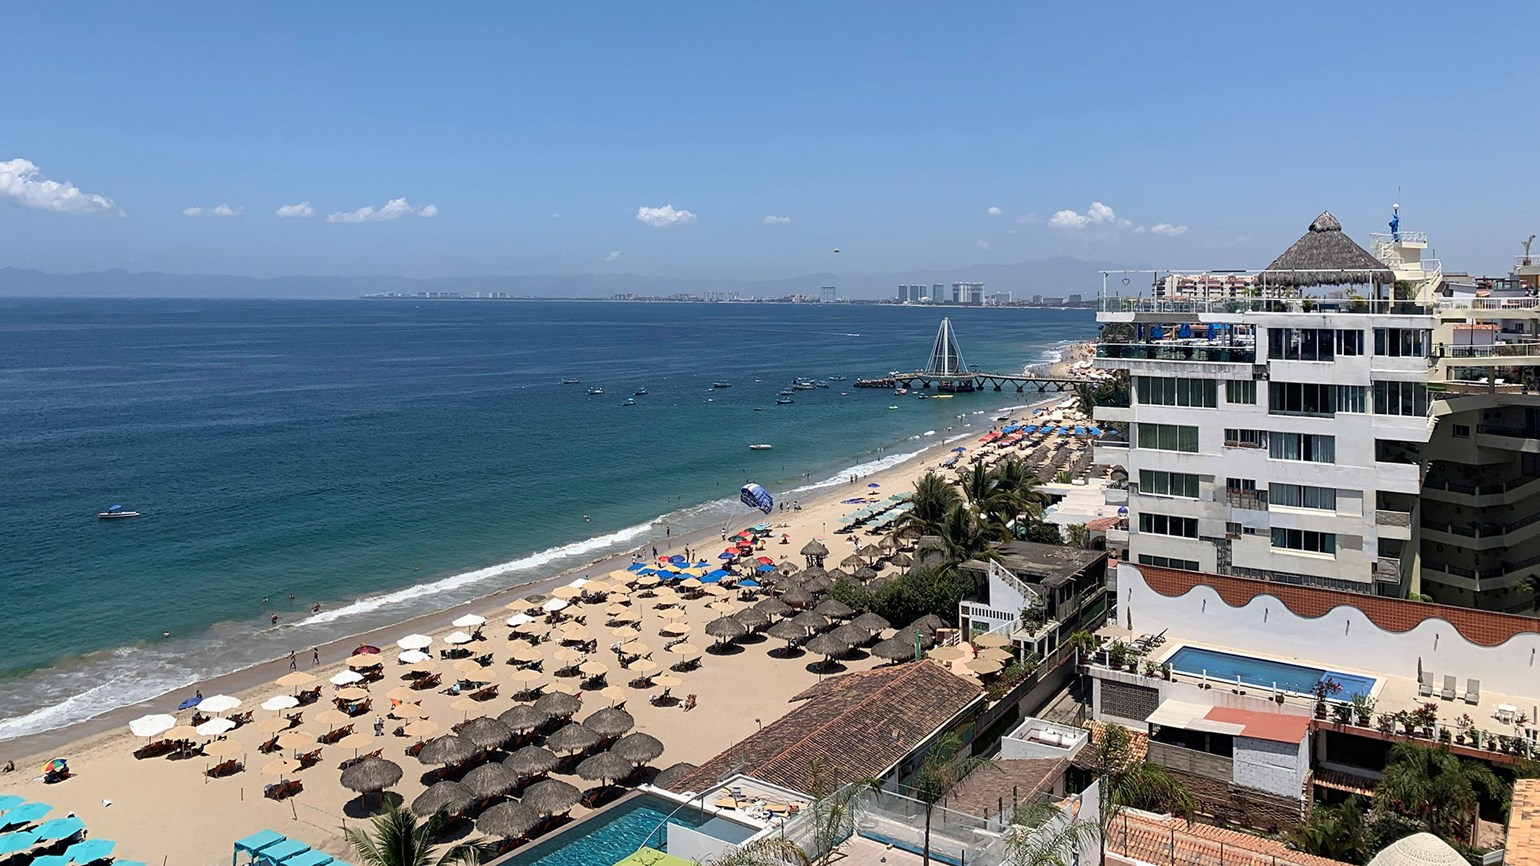 A (long-overdue) return to Puerto Vallarta